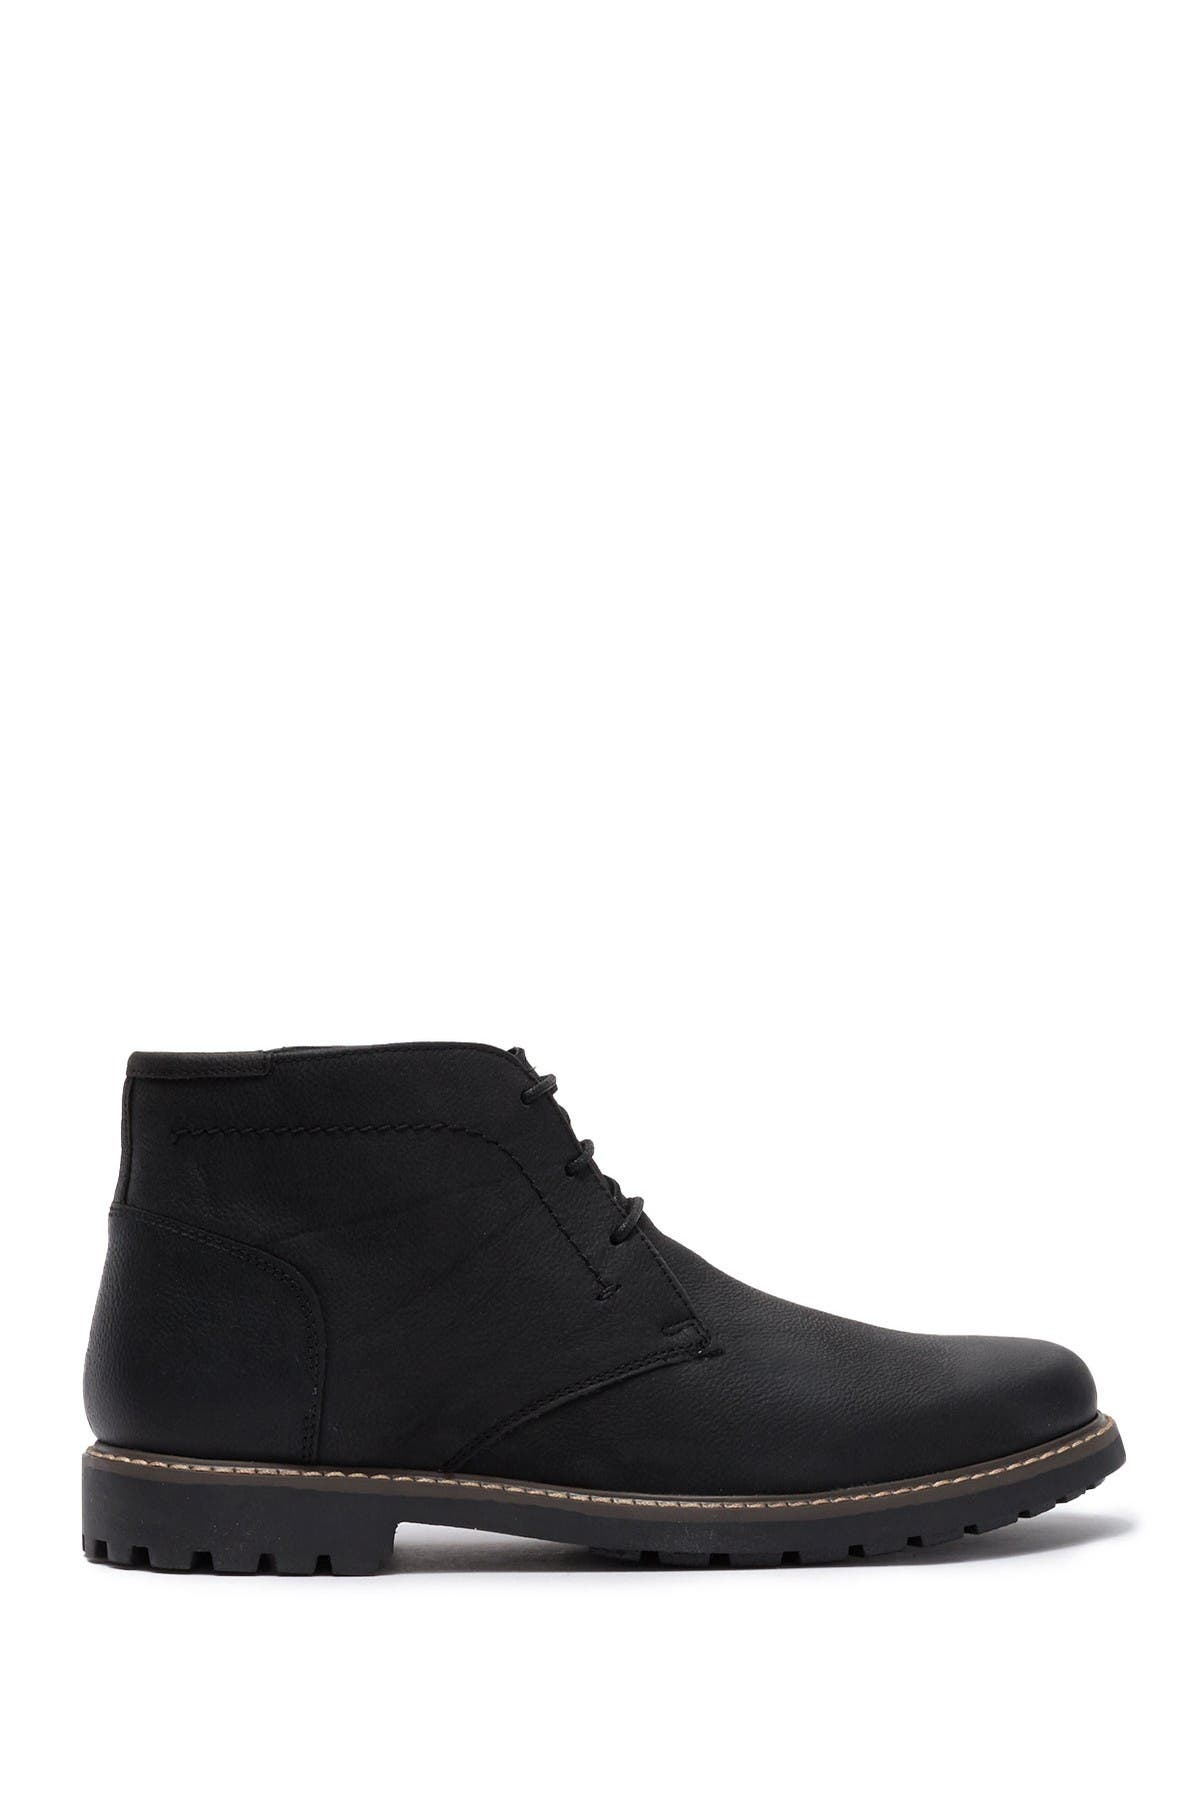 Image of Florsheim Field Leather Chukka Boot